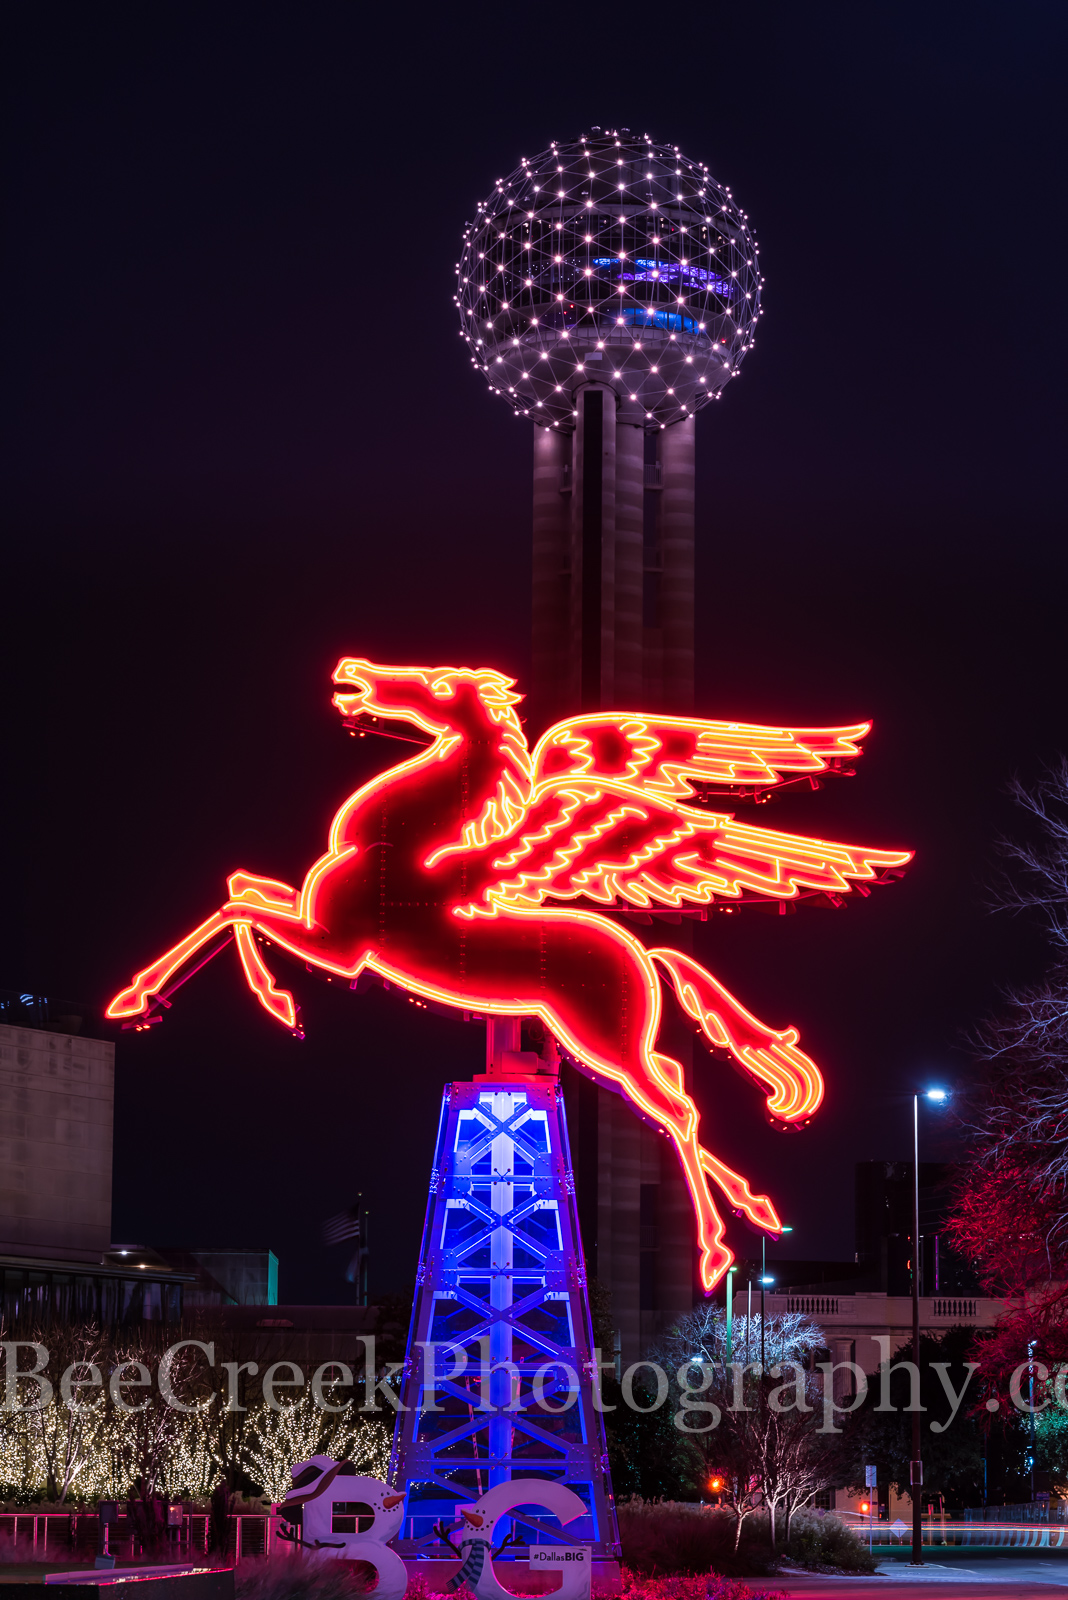 Dallas, Dallas cityscape, Dallas scene, Pegasus, Reuion Tower, cities, city, cityscape, cityscapes, dallas cityscapes, downtown, historic, iconic, landmark, landmarks, oil derrick, texas, photo